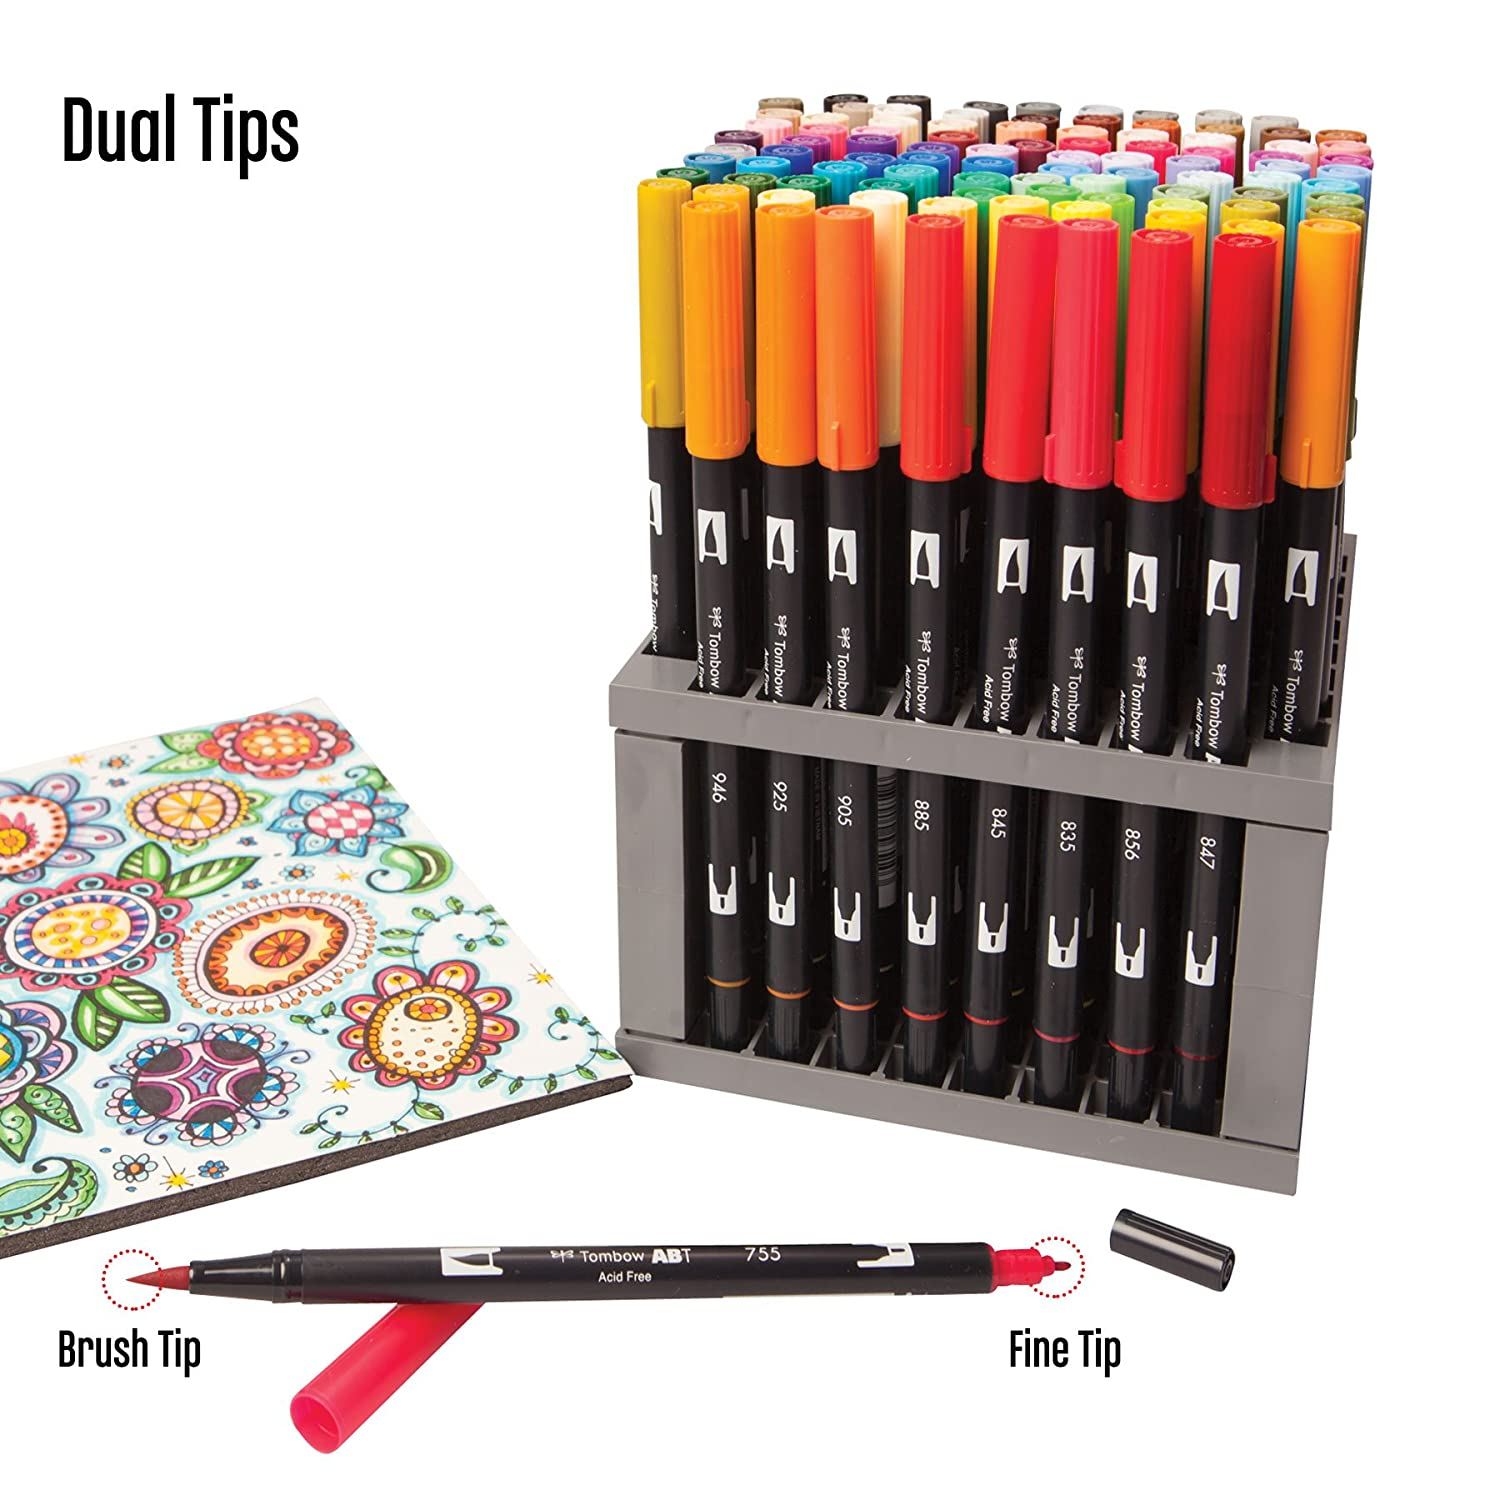 Art color markers - Tombow Permanent Markers Dual Brush Pen Professional Fine Art Crafts 96 Colors